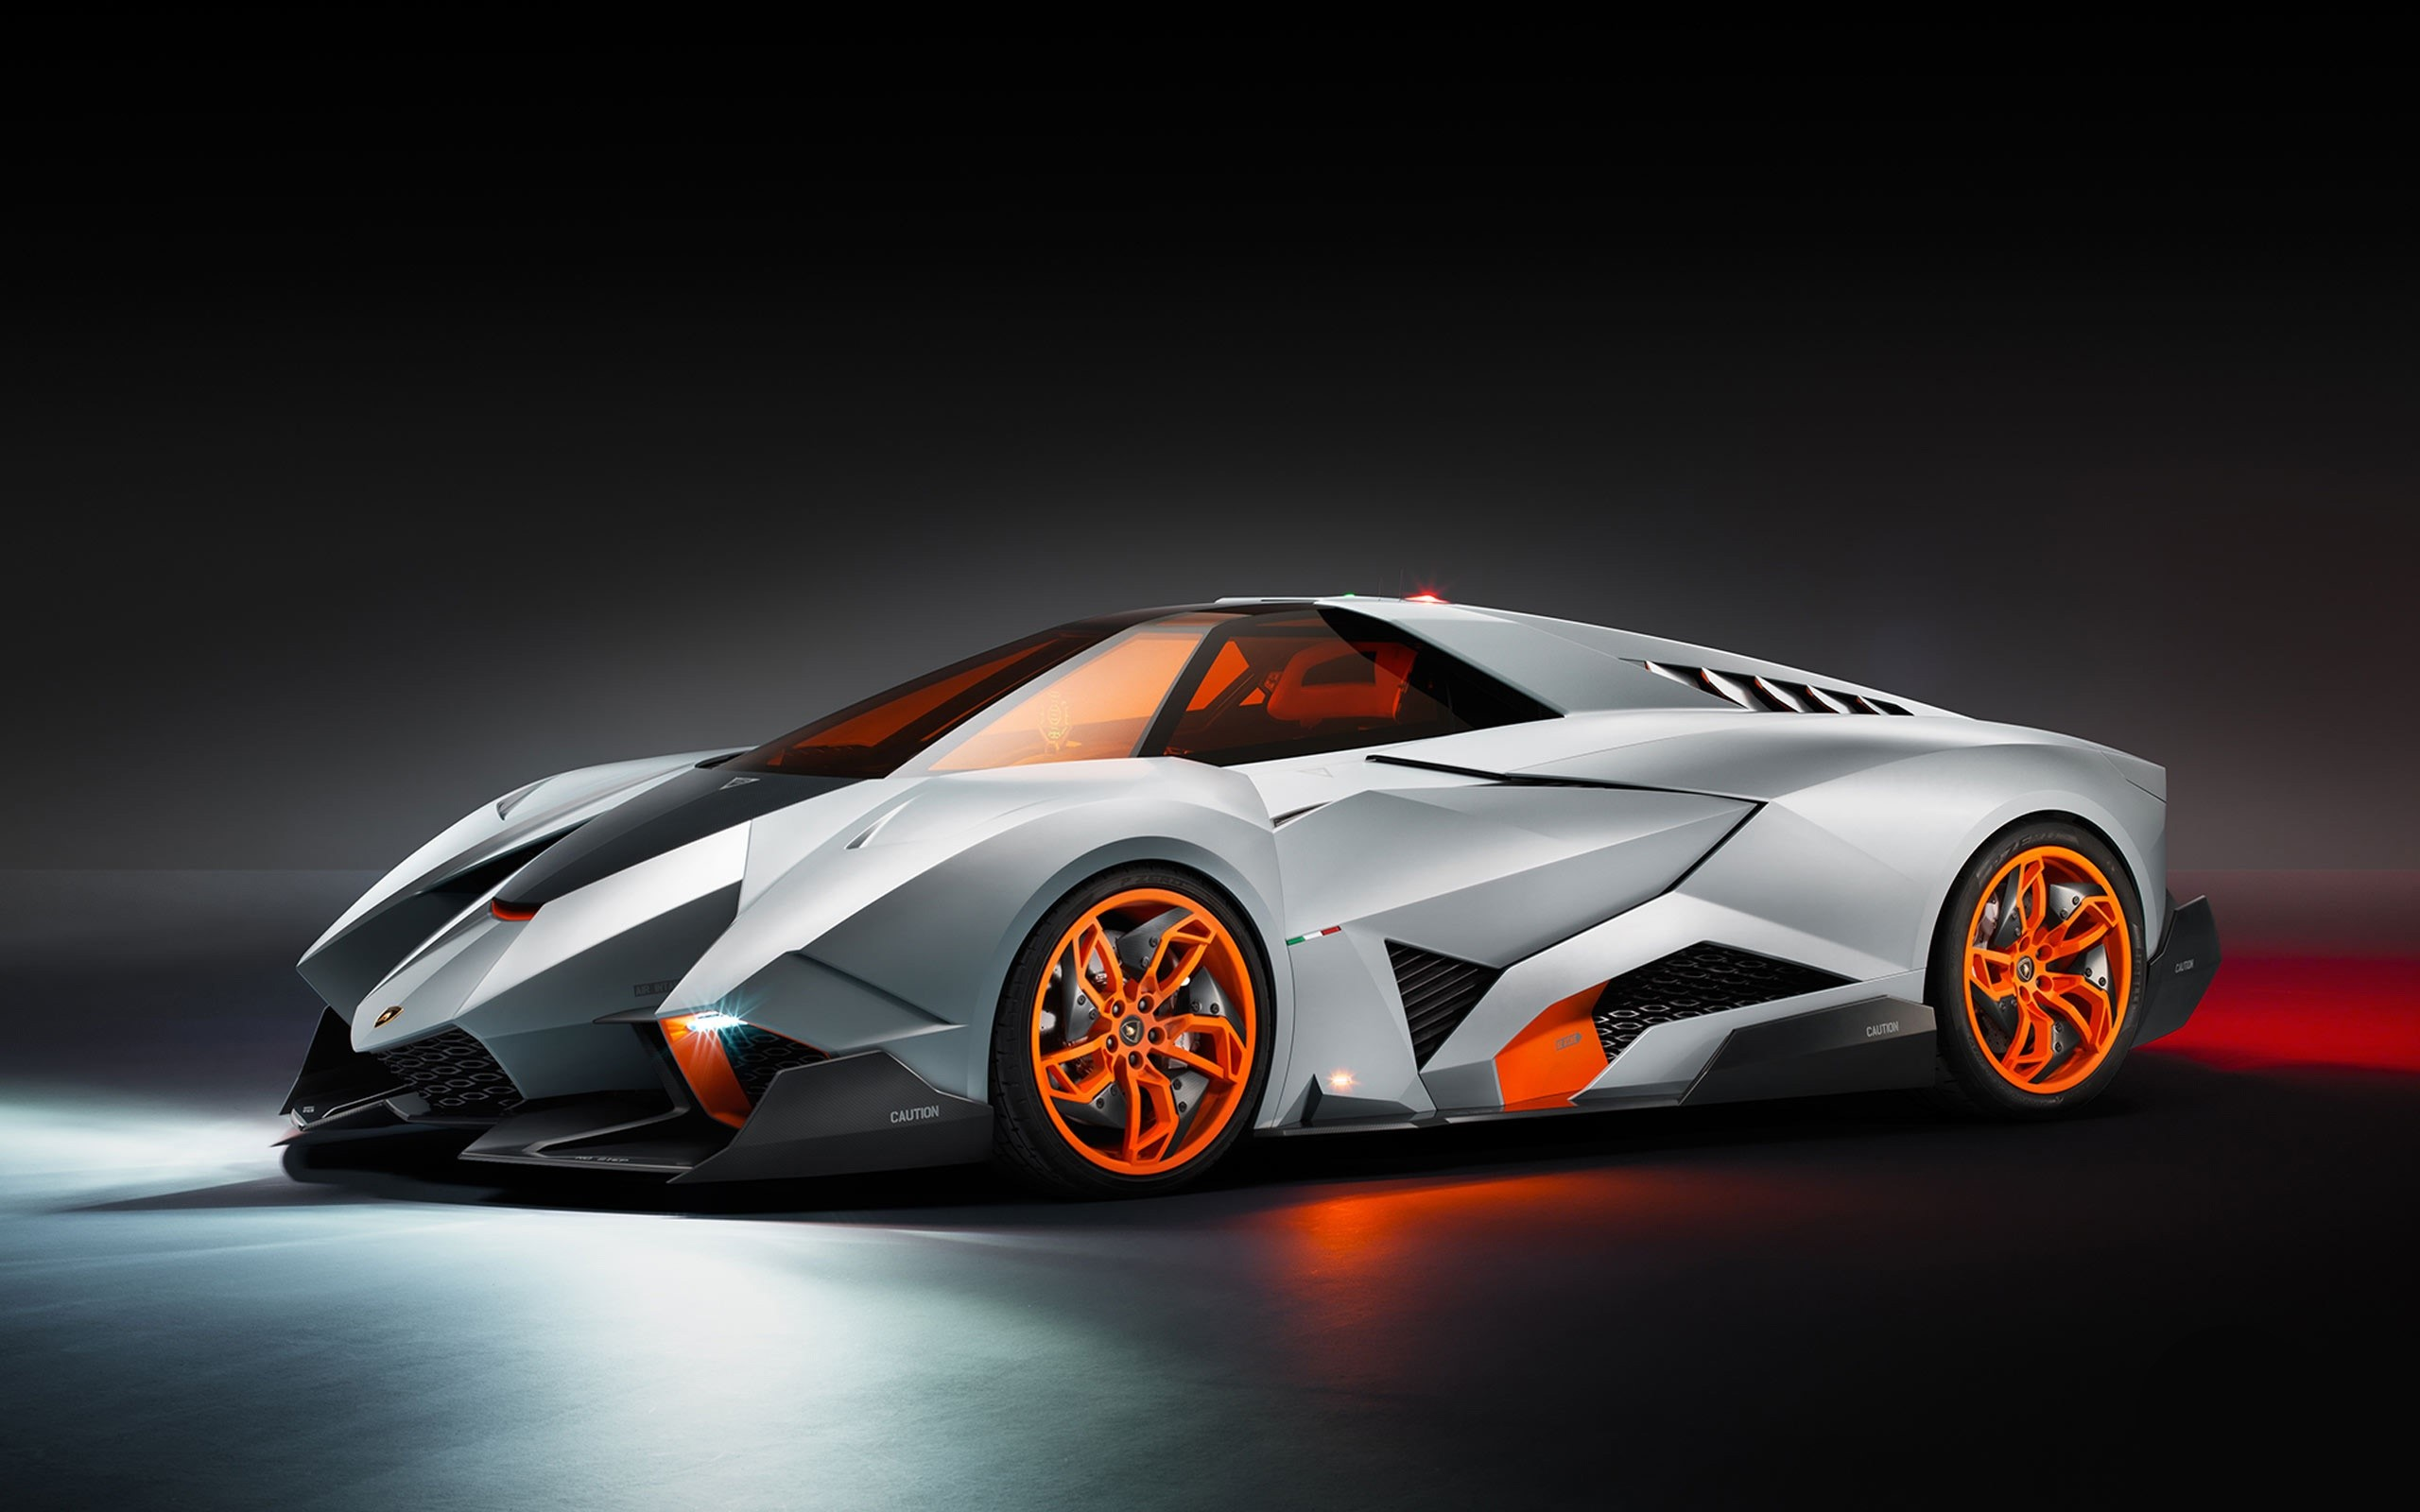 Wallpaper Lamborghini egoista concept car Images